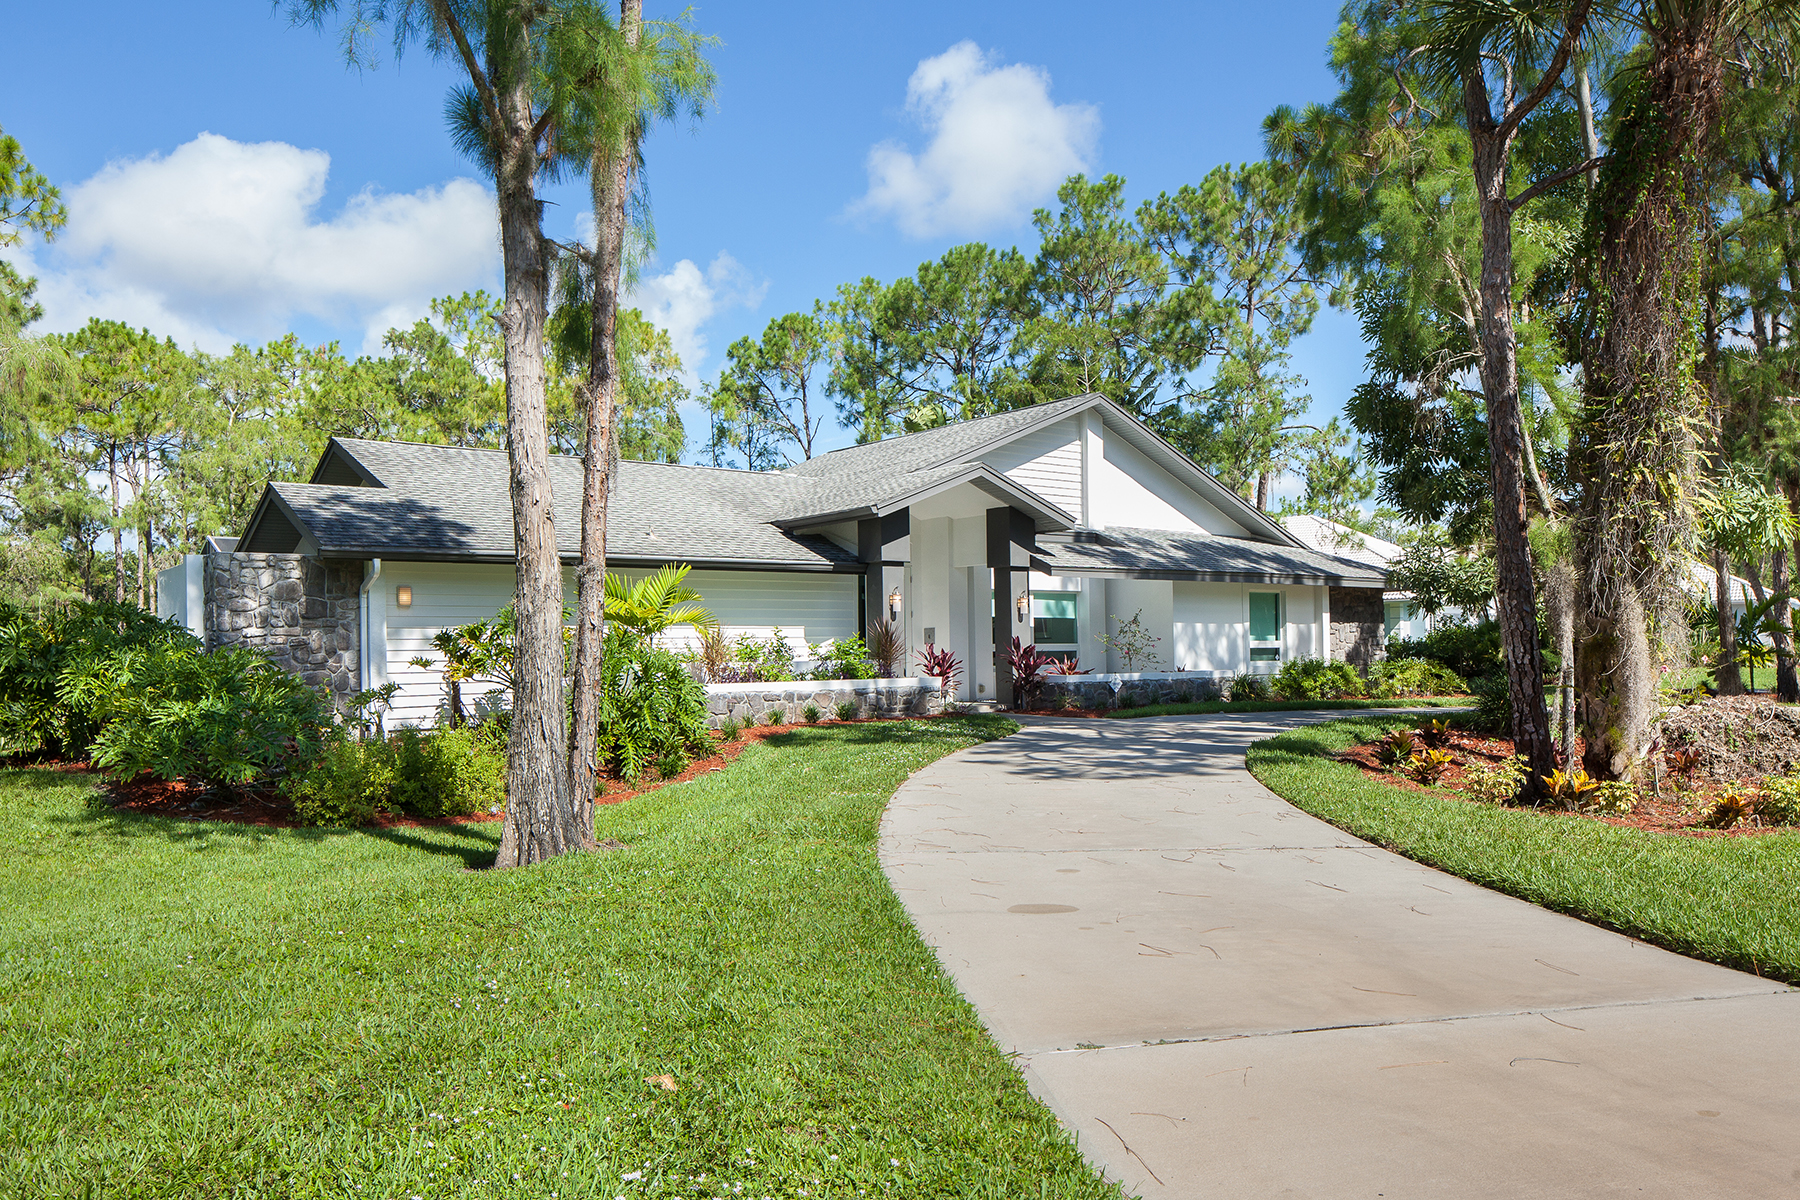 Single Family Home for Sale at QUAIL CREEK 12887 Valewood Dr Quail Creek, Naples, Florida 34119 United States